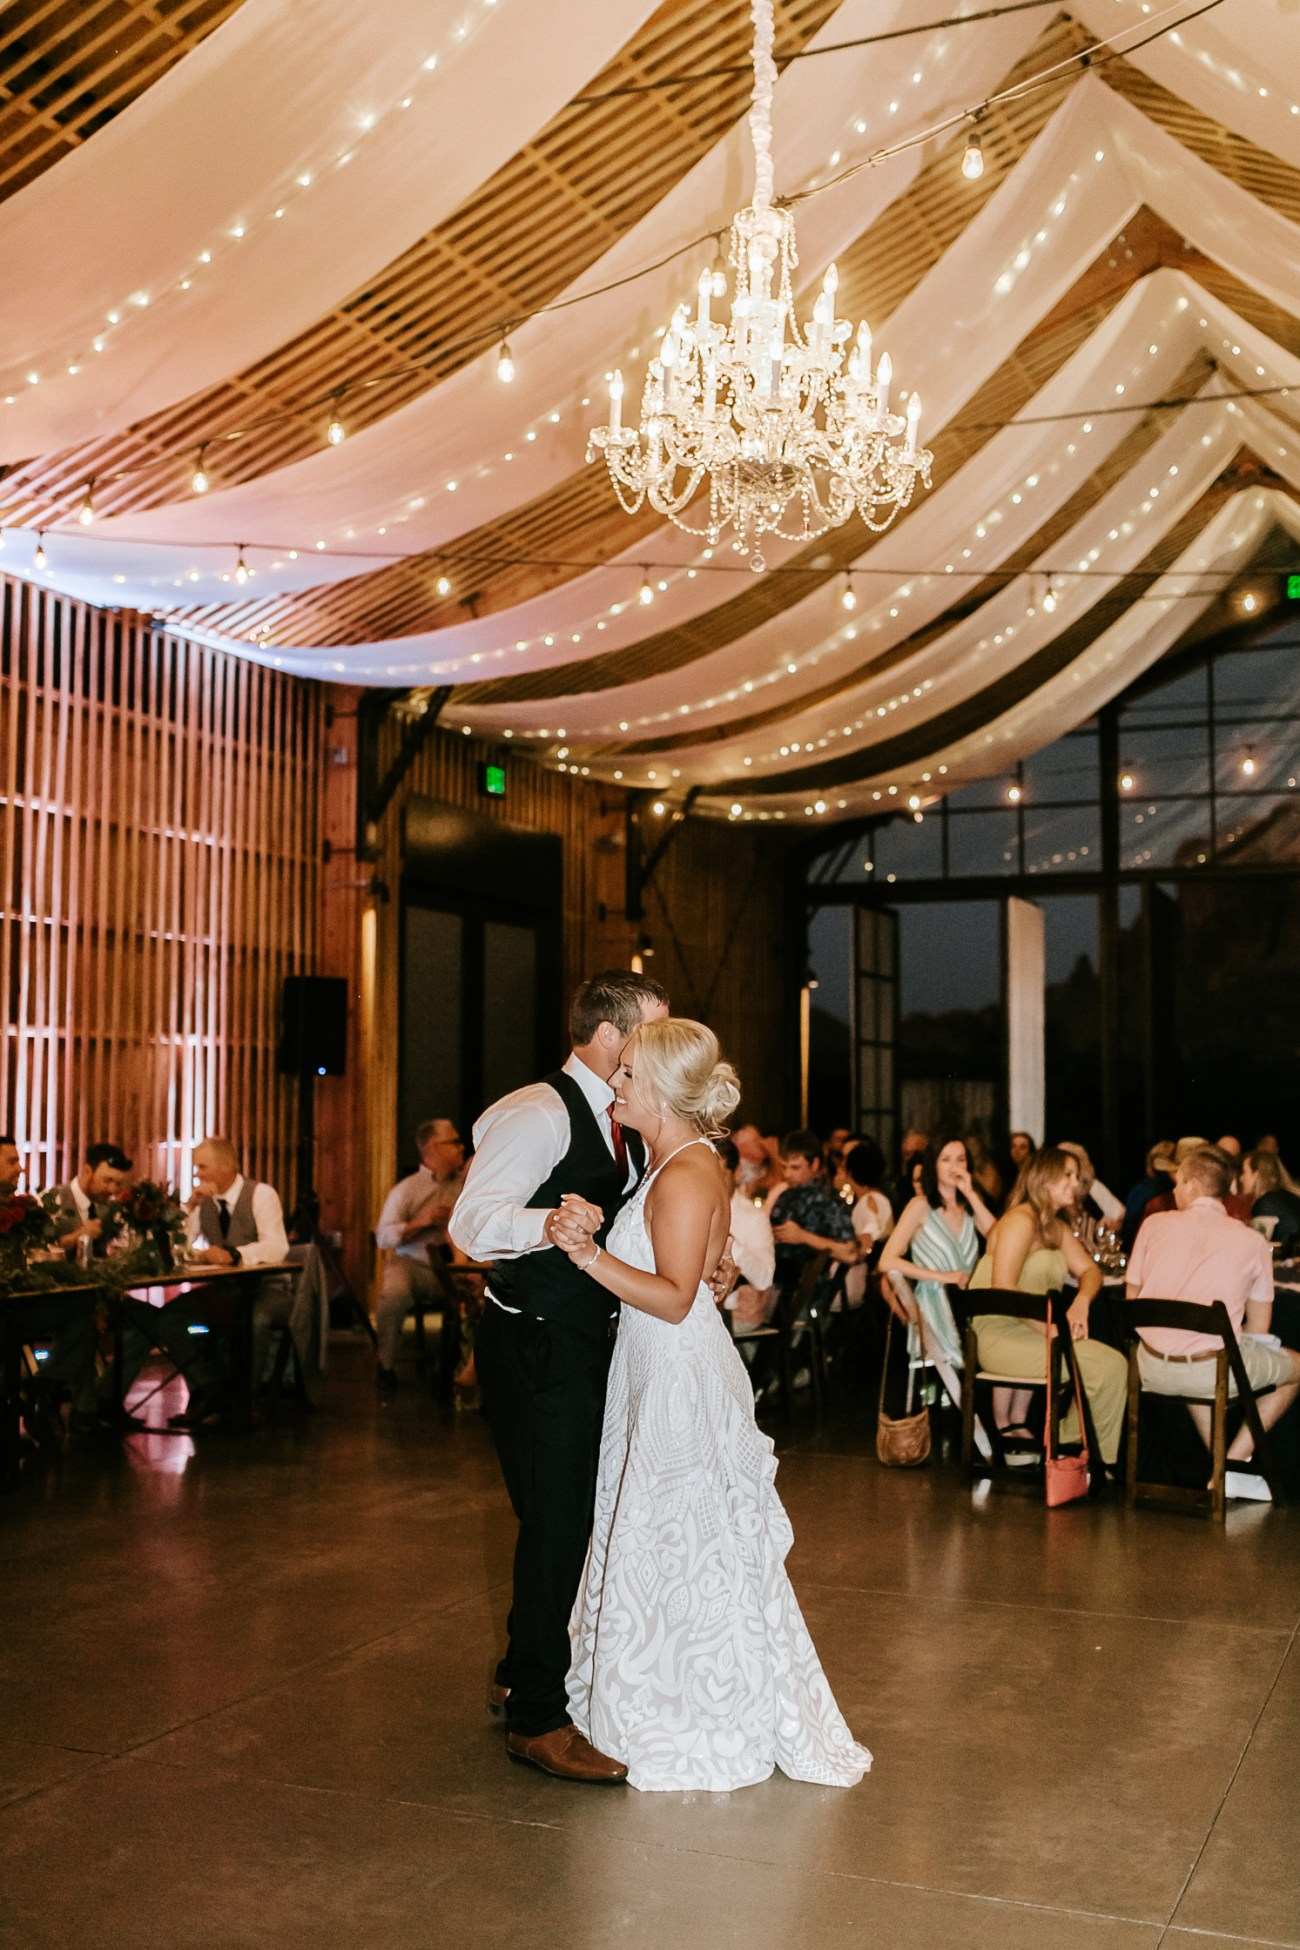 Megan Claire Photography | Arizona Wedding Photographer. Beautiful fall wedding in the desert at the Paseo in Apache Junction, Arizona near superstition mountains. first dance photos @meganclairephoto